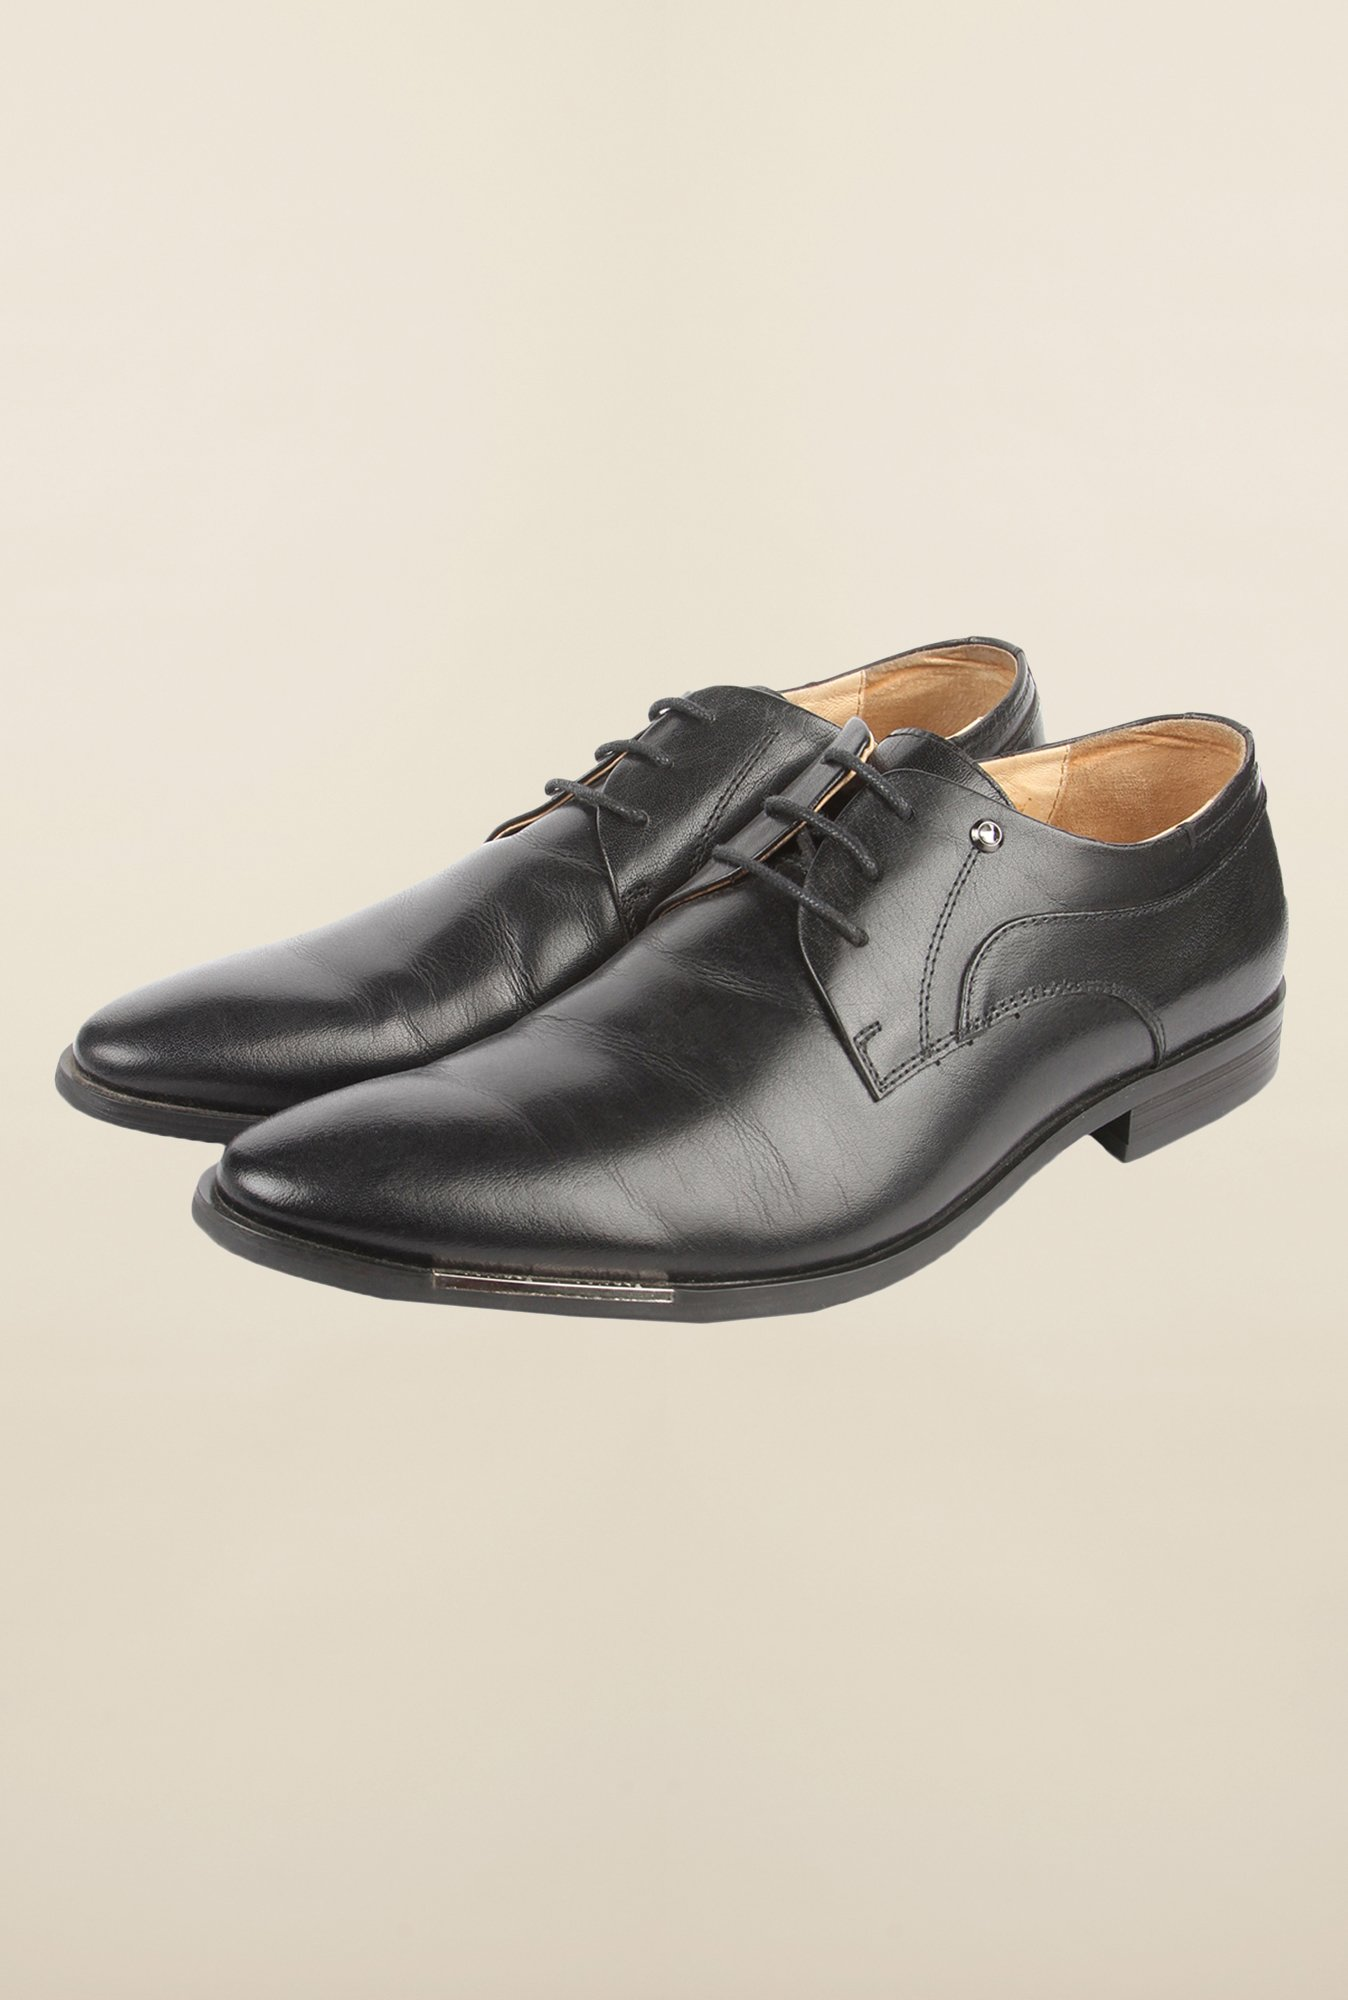 Cobblerz Black Derby Formal Shoes